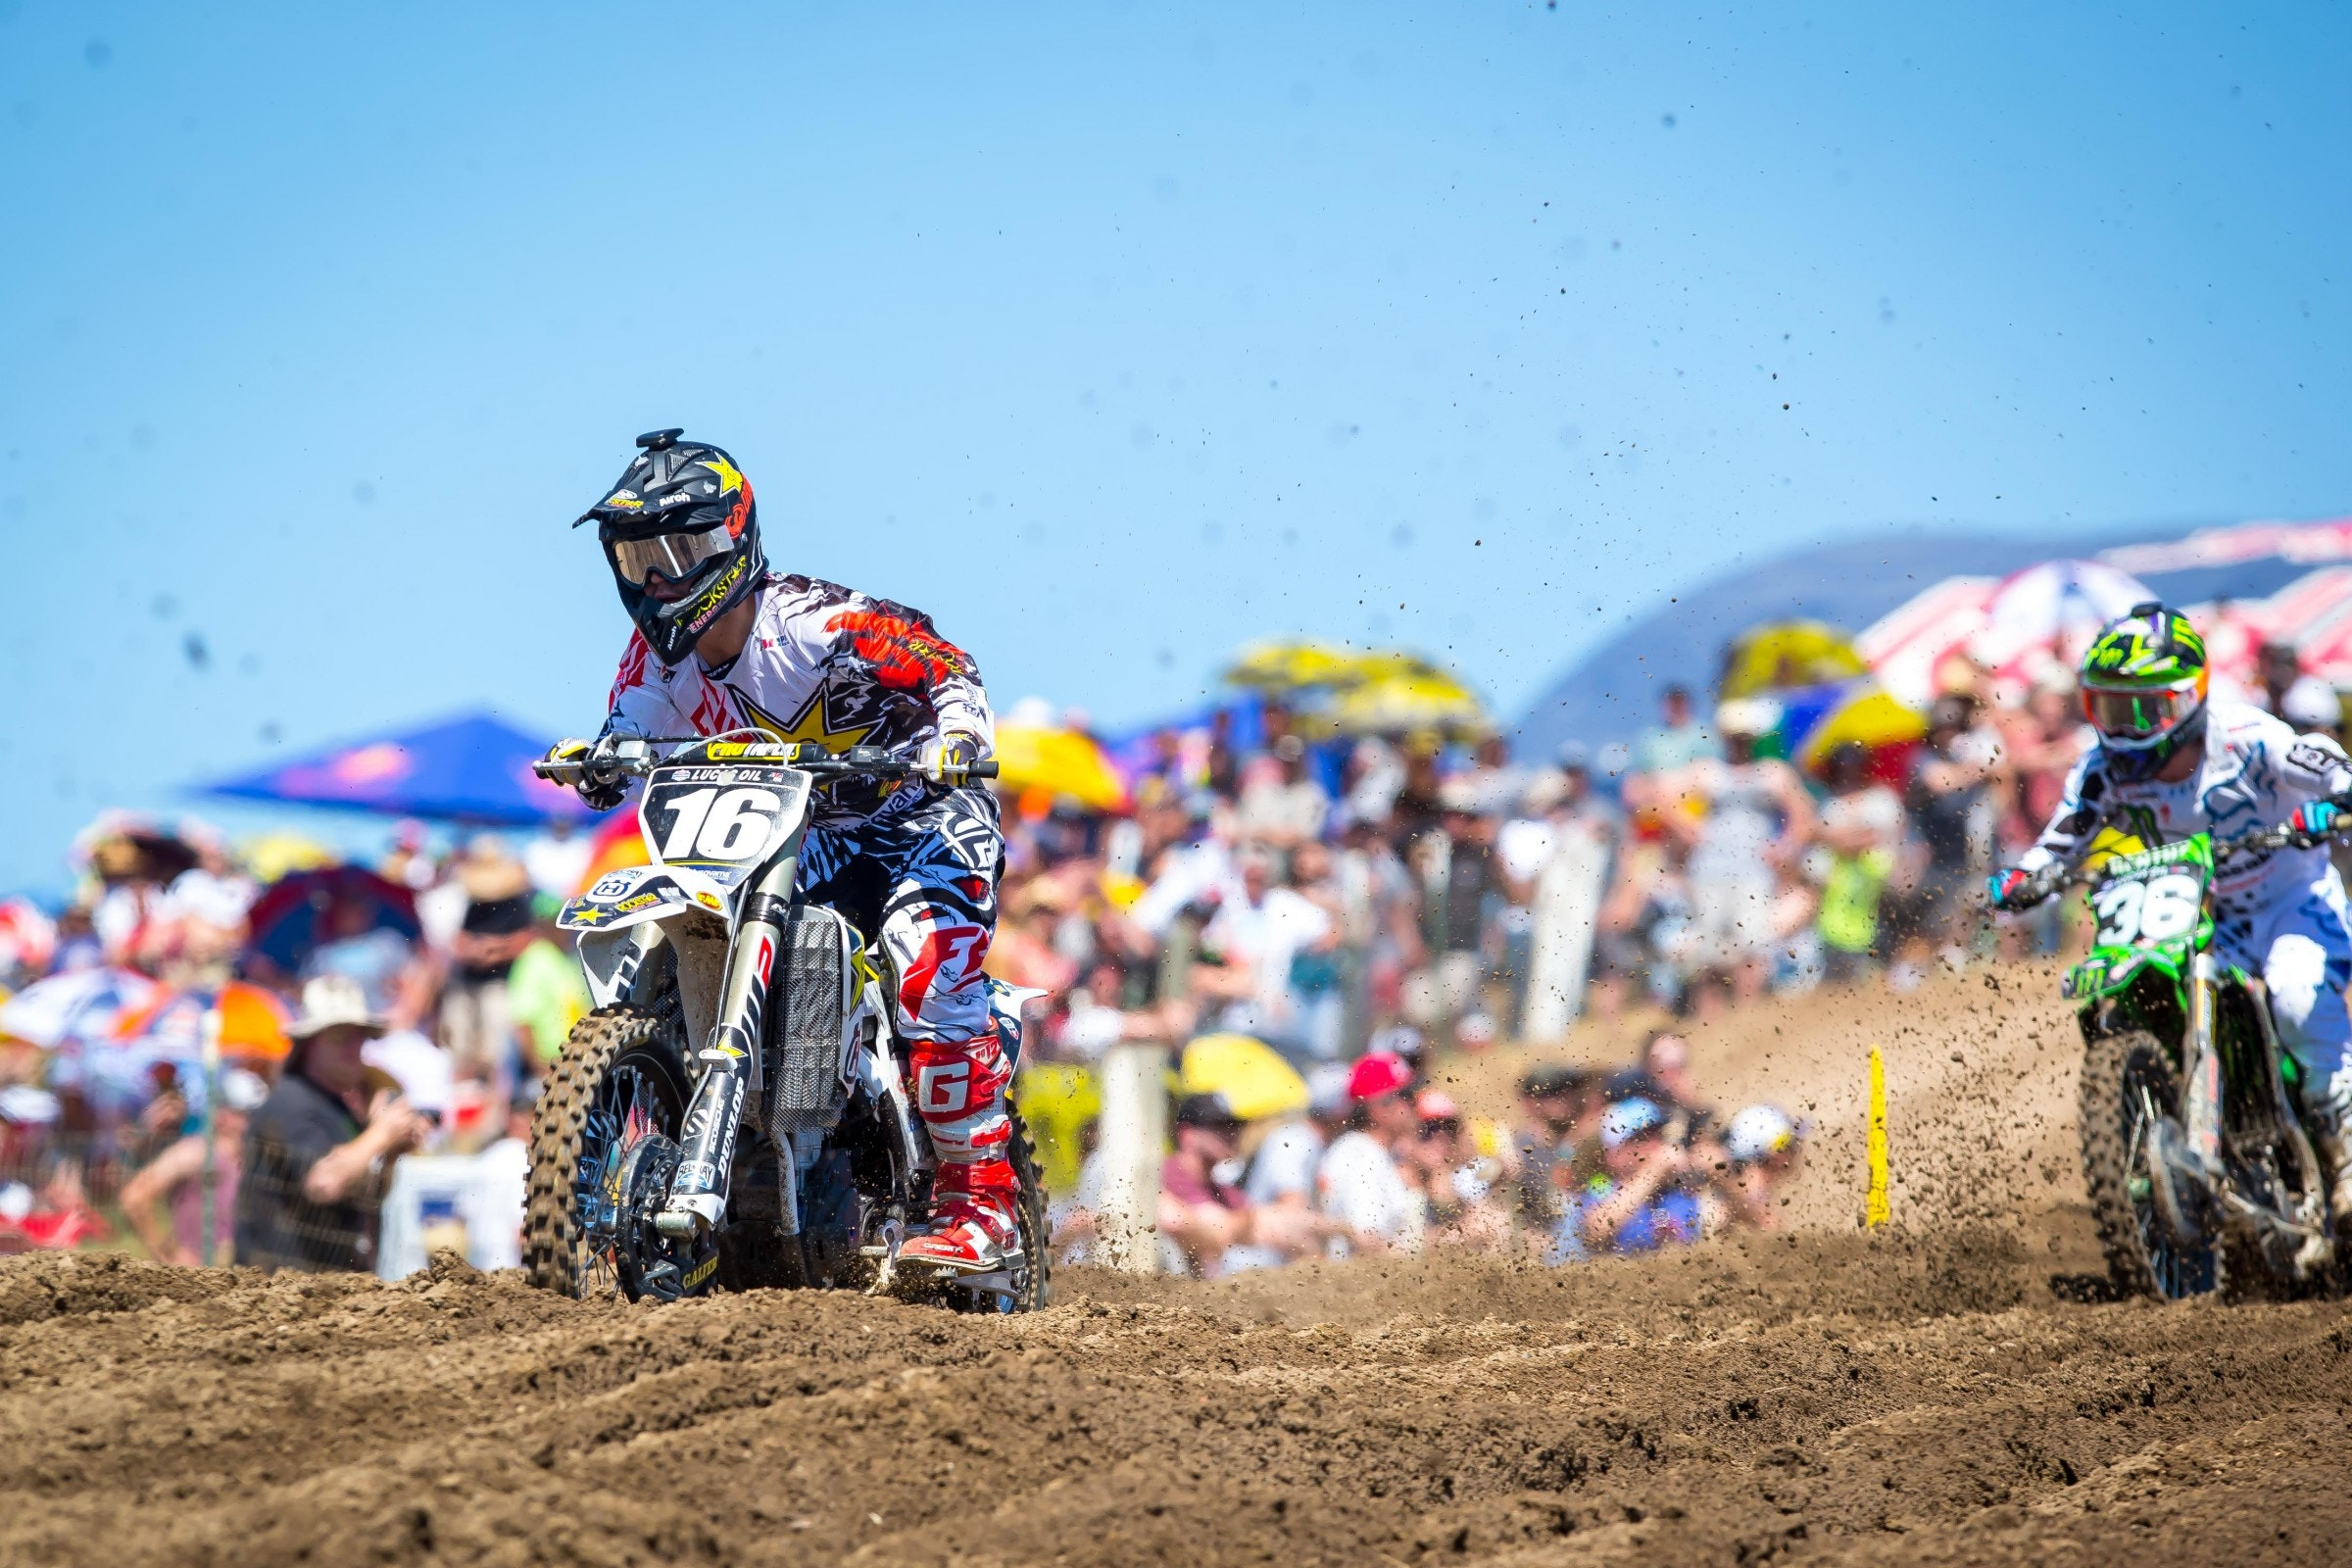 Osborne wrestled the lead from Cianciarulo, who ended up second in the first moto.